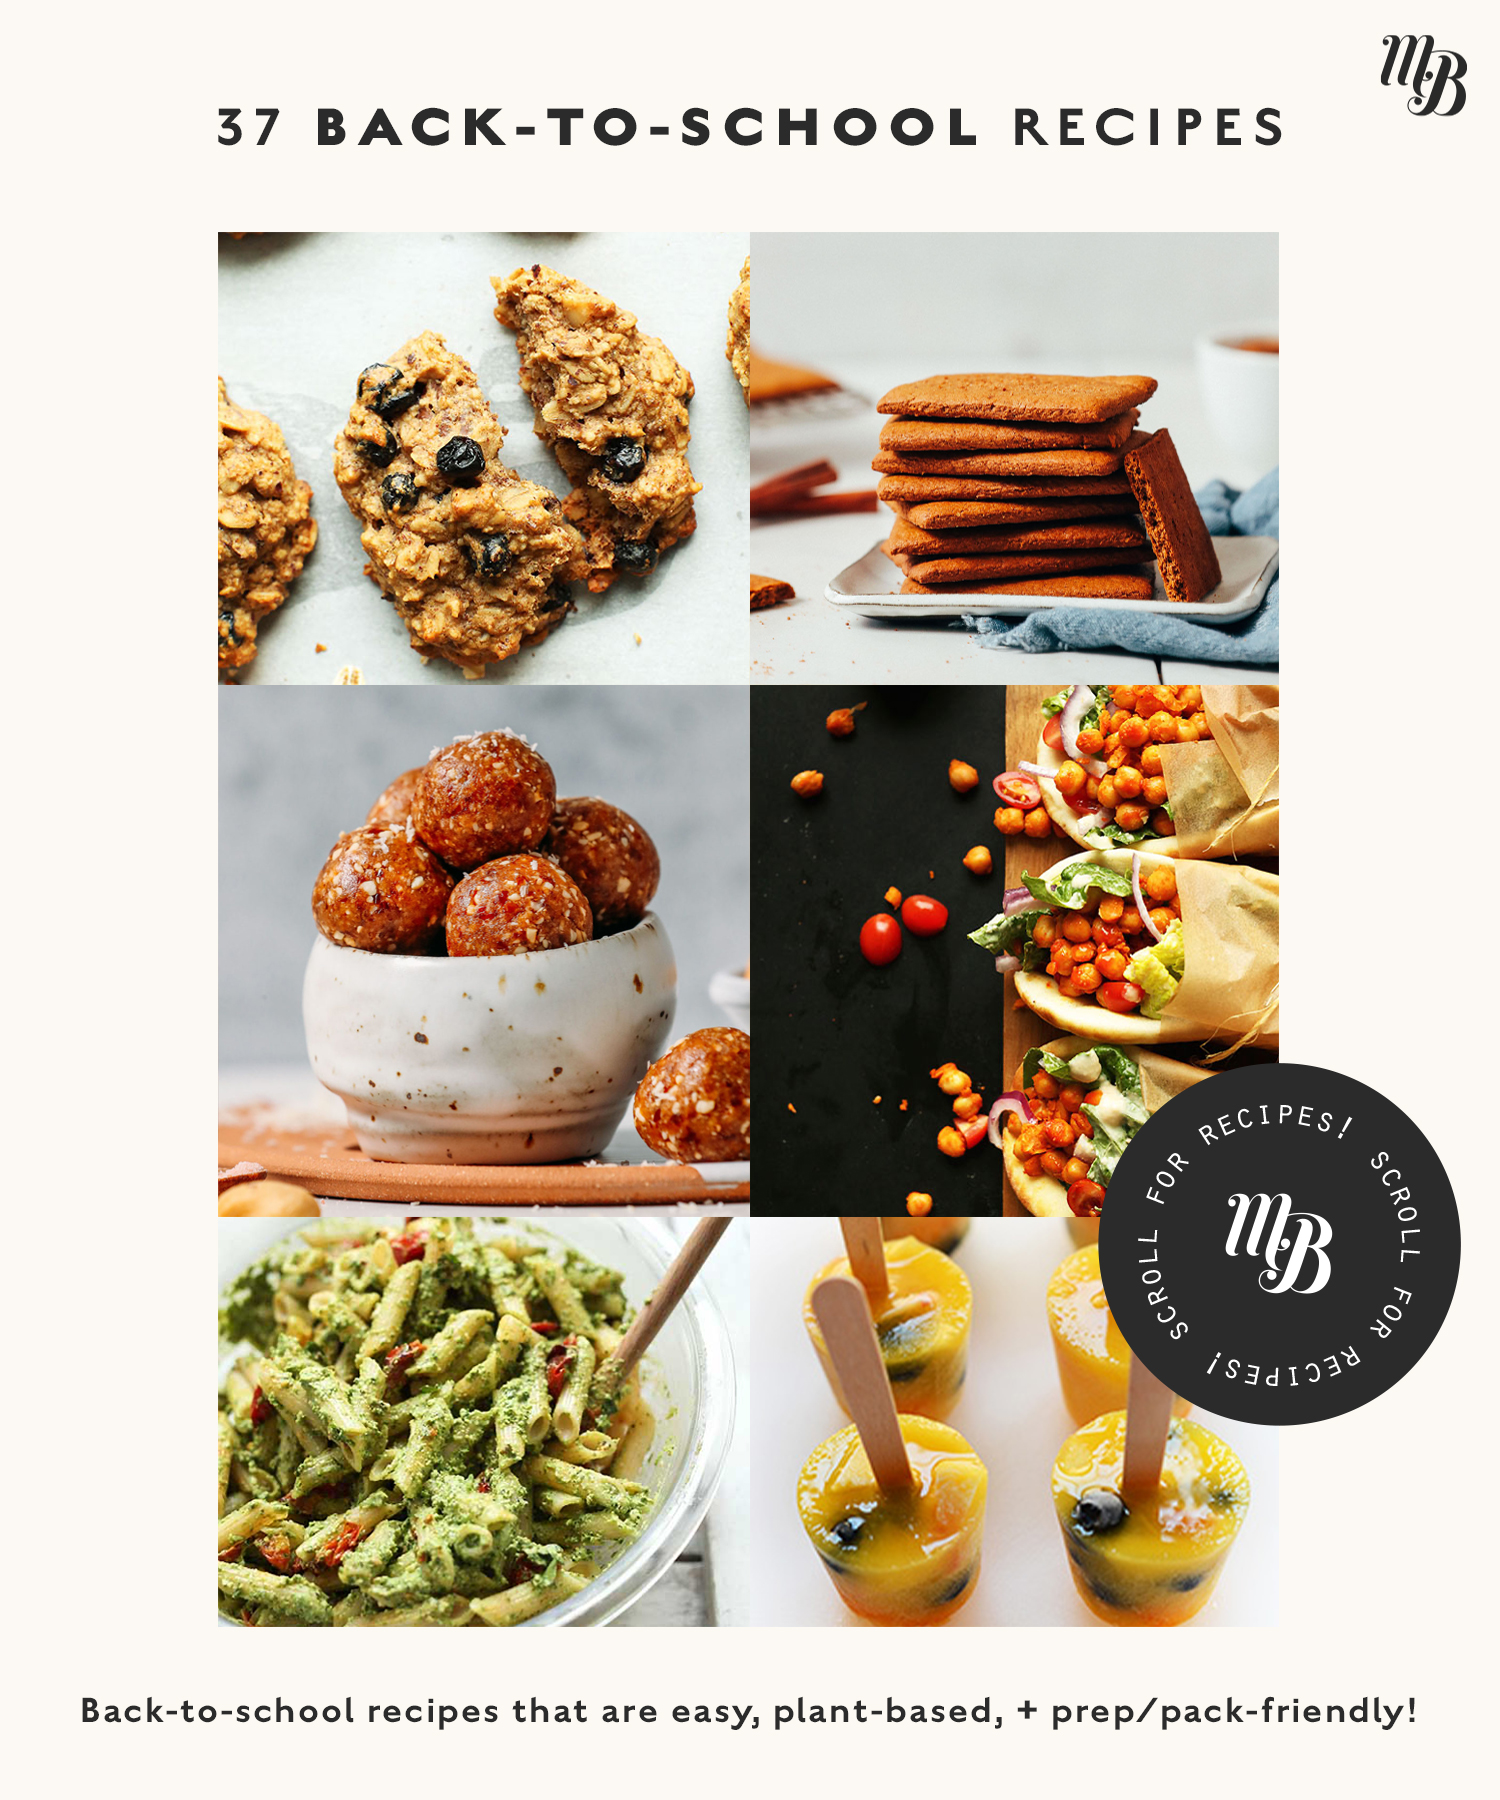 Assortment of back-to-school recipes including snacks, lunches, and more